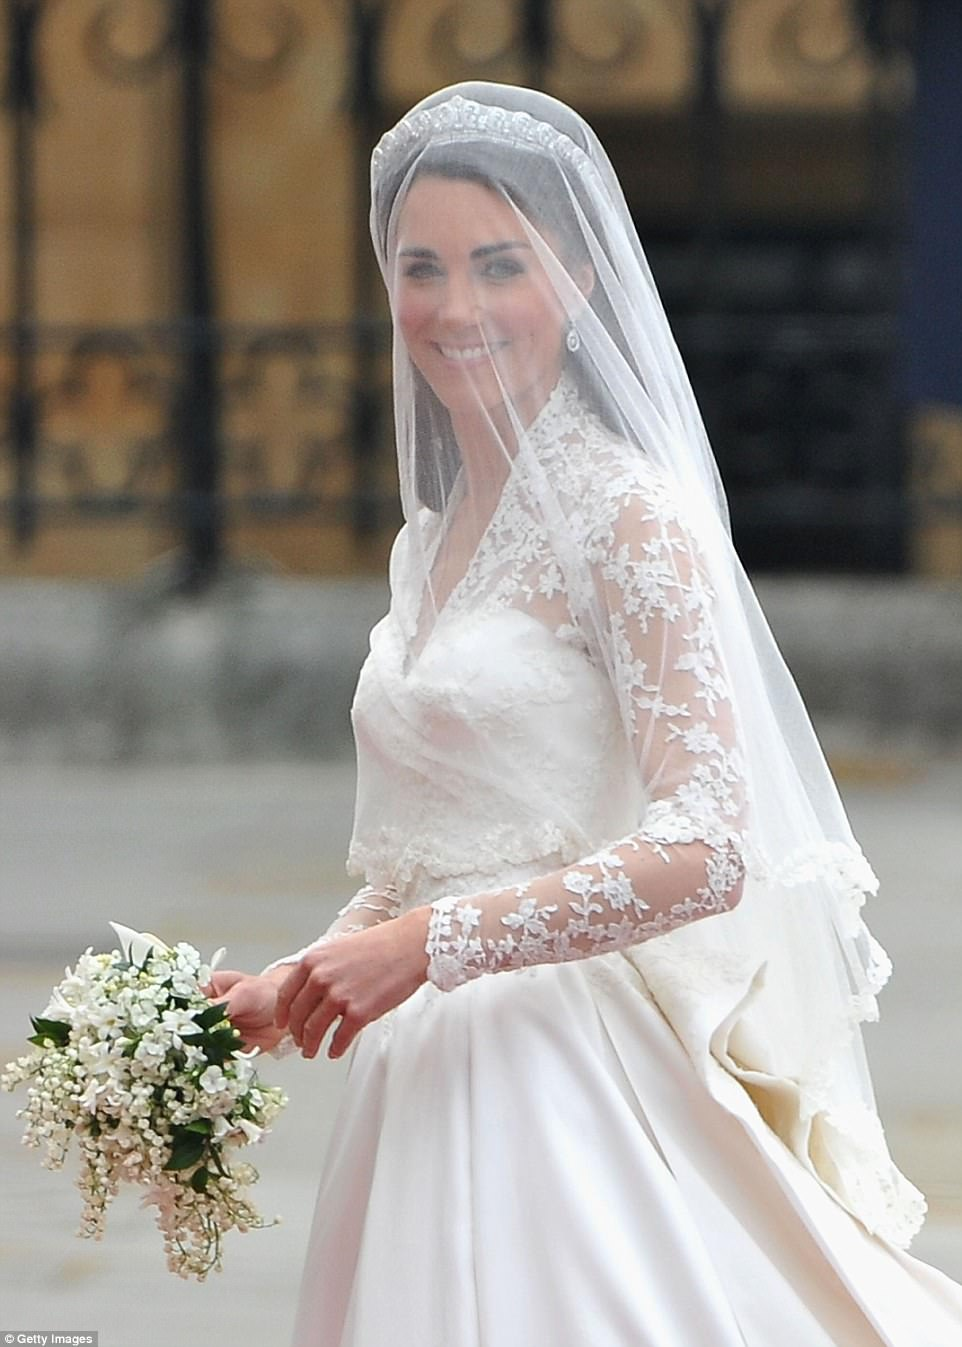 Kate famously plumped for Alexander McQueen for her big day. Creative director Sarah Burton has previously spoken about the 'happy experience' of designing Kate Middleton's show-stopping 'fairytale' gown for the 2011 royal wedding